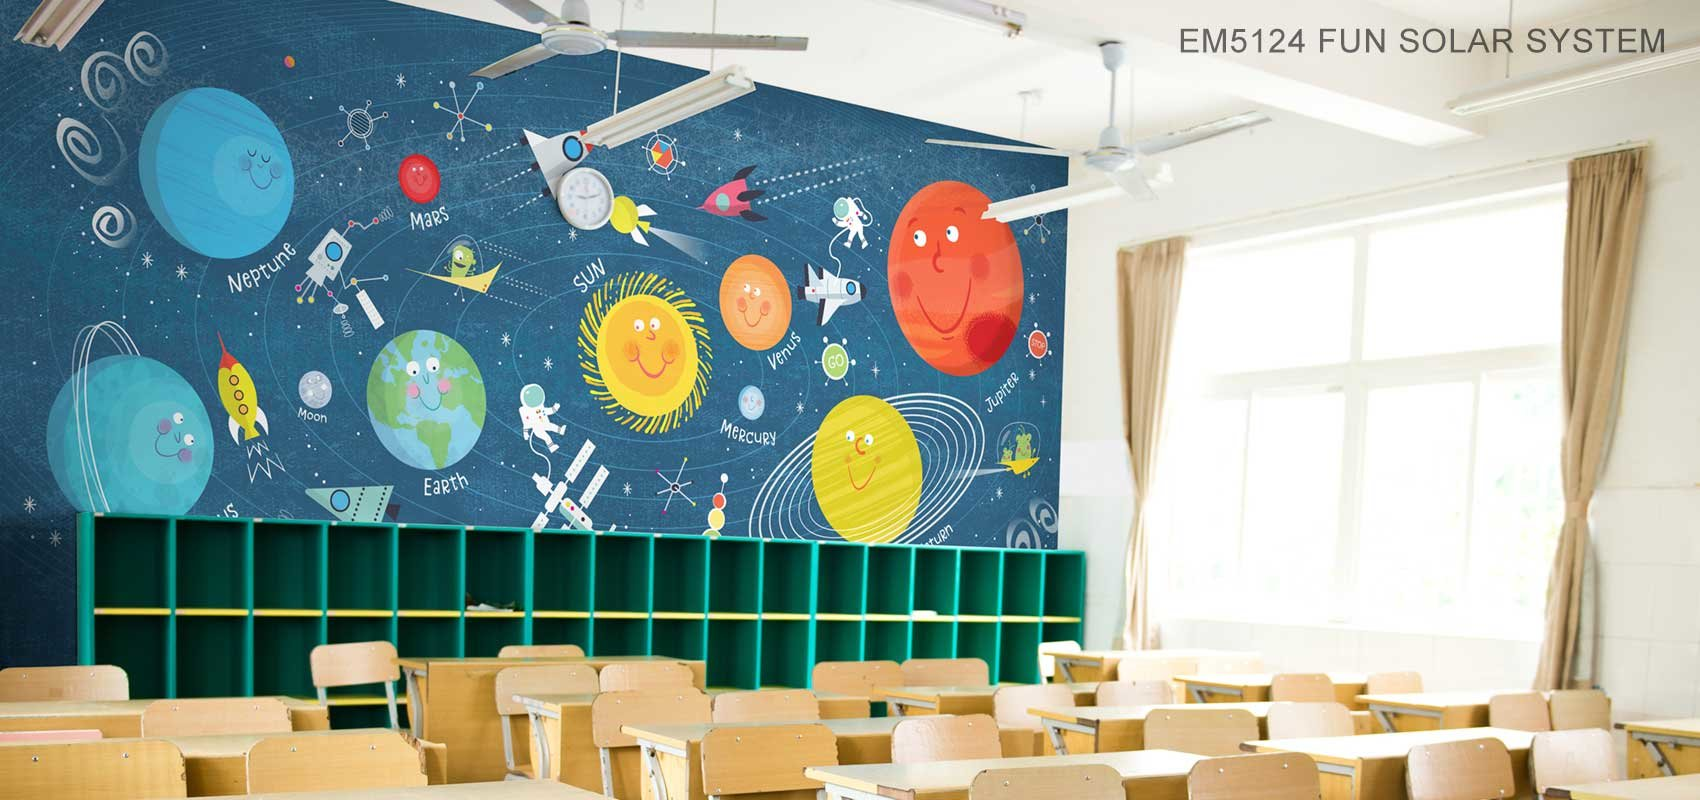 Fun Solar System Mural Wallpaper